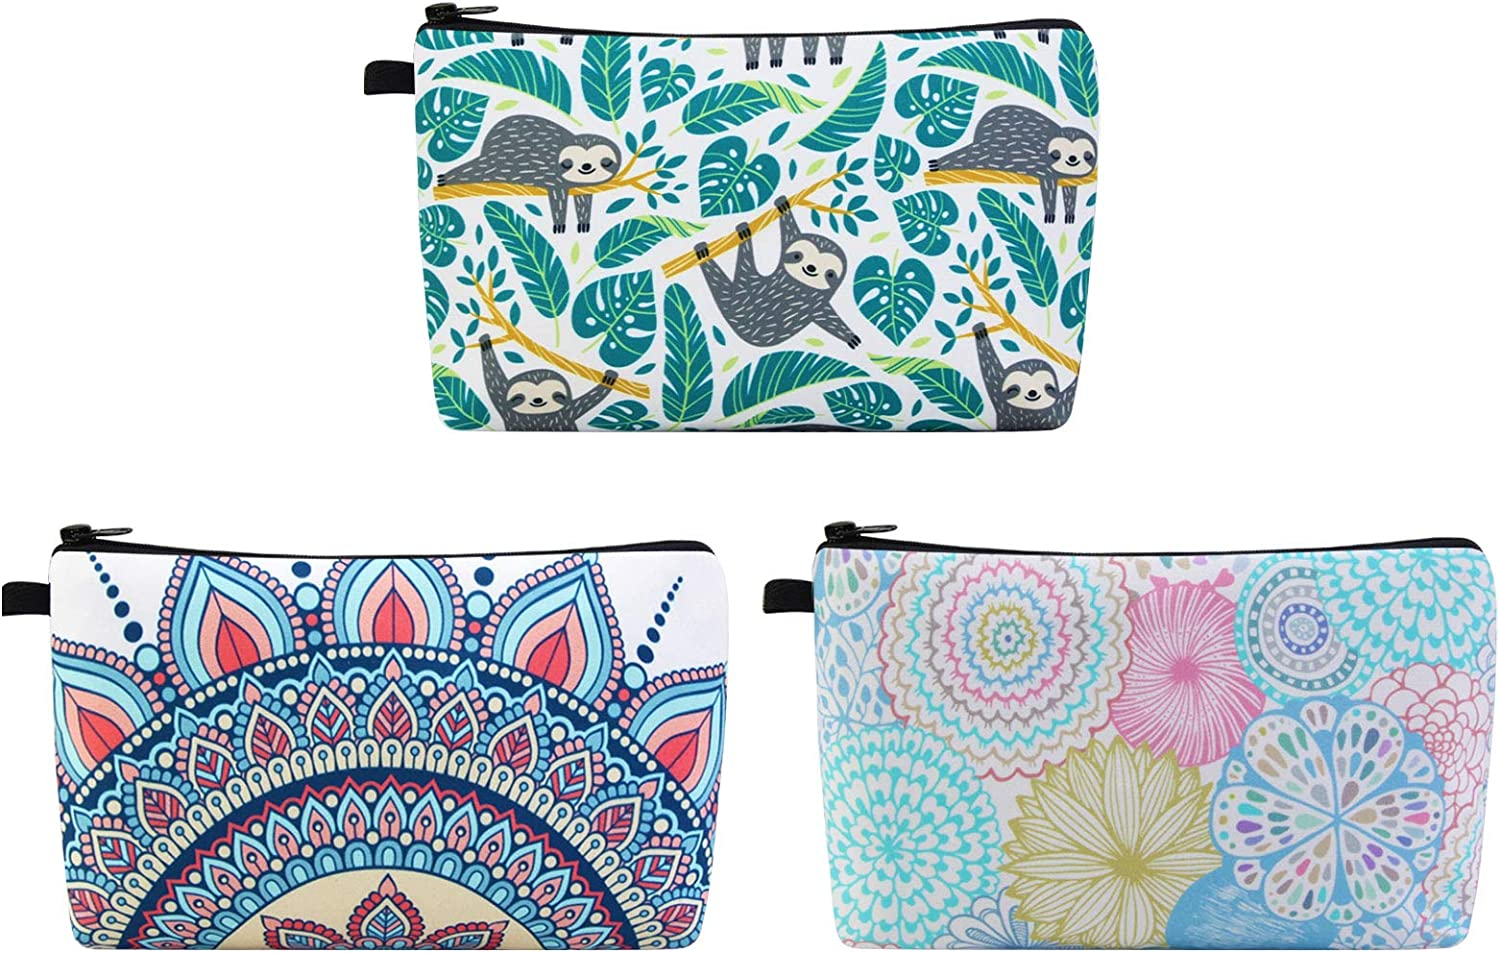 MAGEFY Makeup Bag 3 Styles Portable Travel Cosmetic Bag for Women Flower Patterns Zipper Pouch Sloth Gifts Makeup Pouch for Girls with Black Zipper (3 packs)